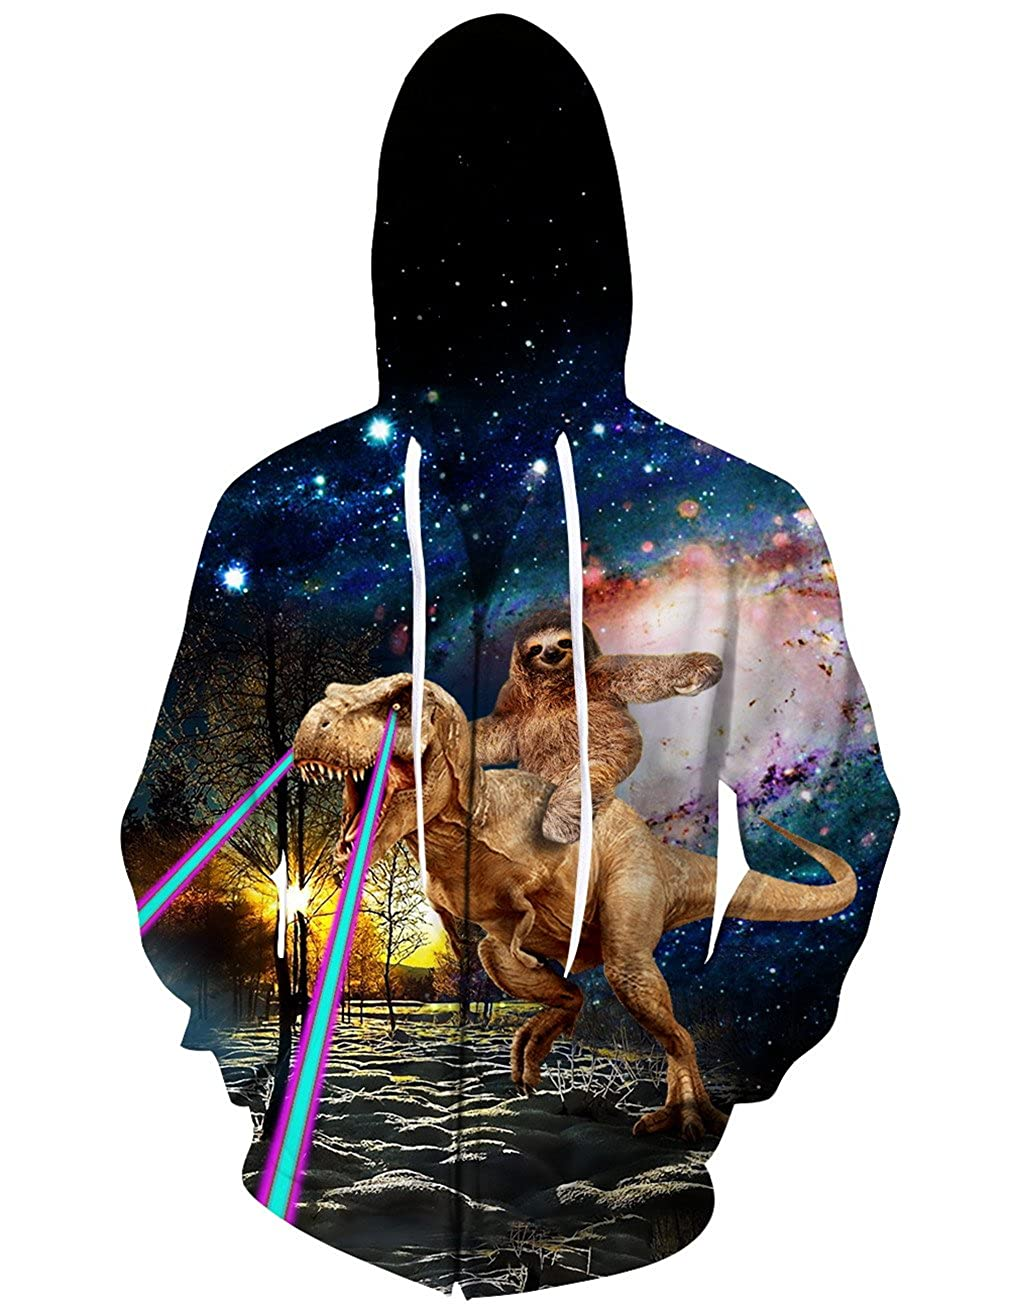 Qvfnaly Men Hoodies Sweatshirts 3D Print Zipper Cap Tops Men Hooded Nebula Jacket